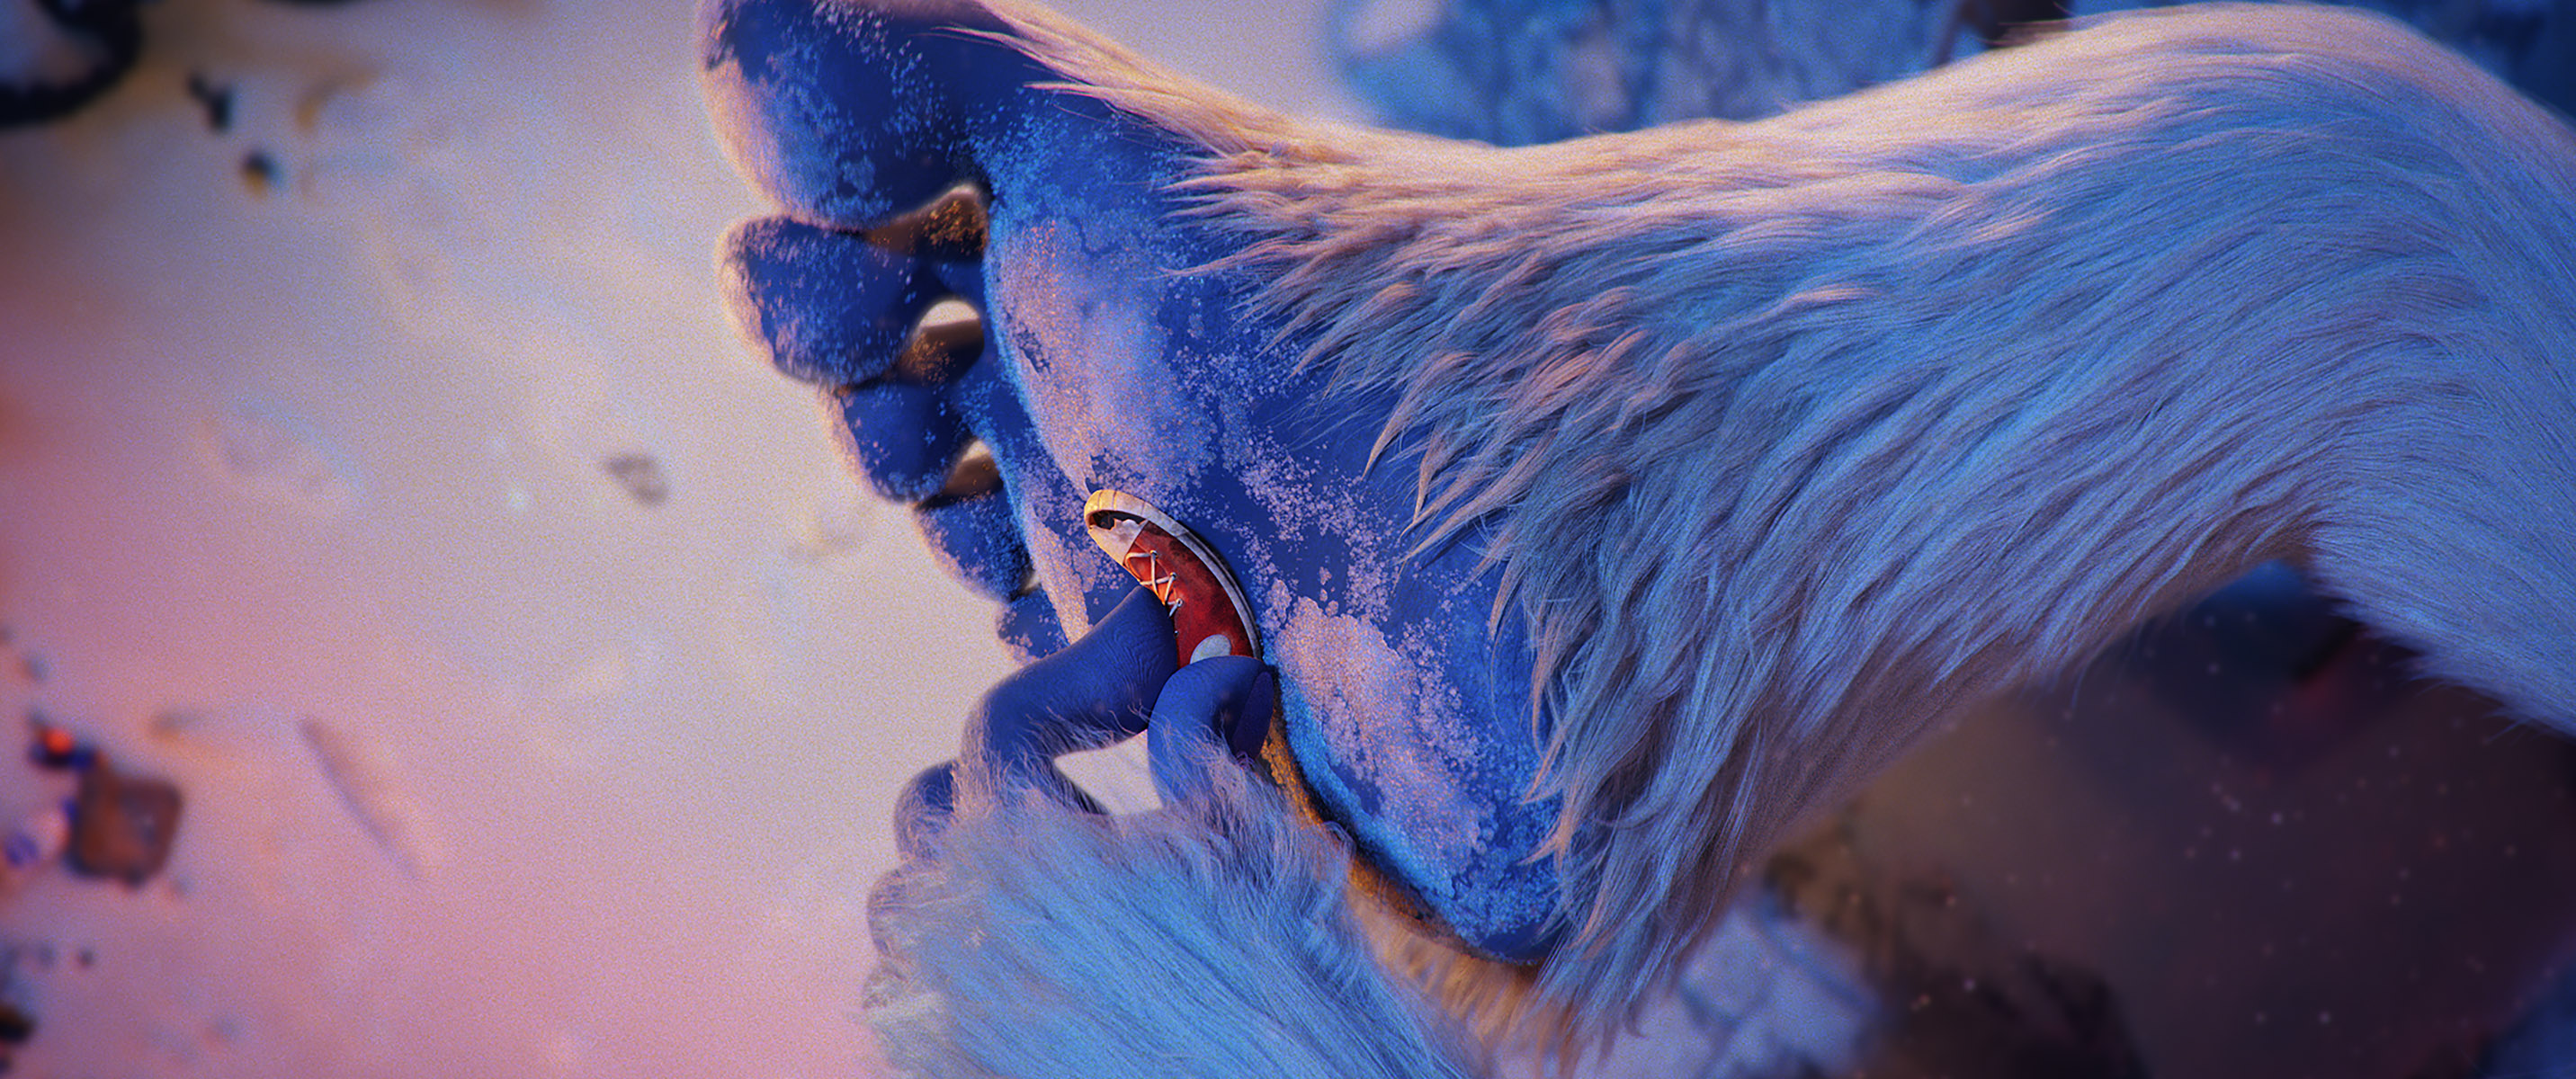 Smallfoot Gallery 4